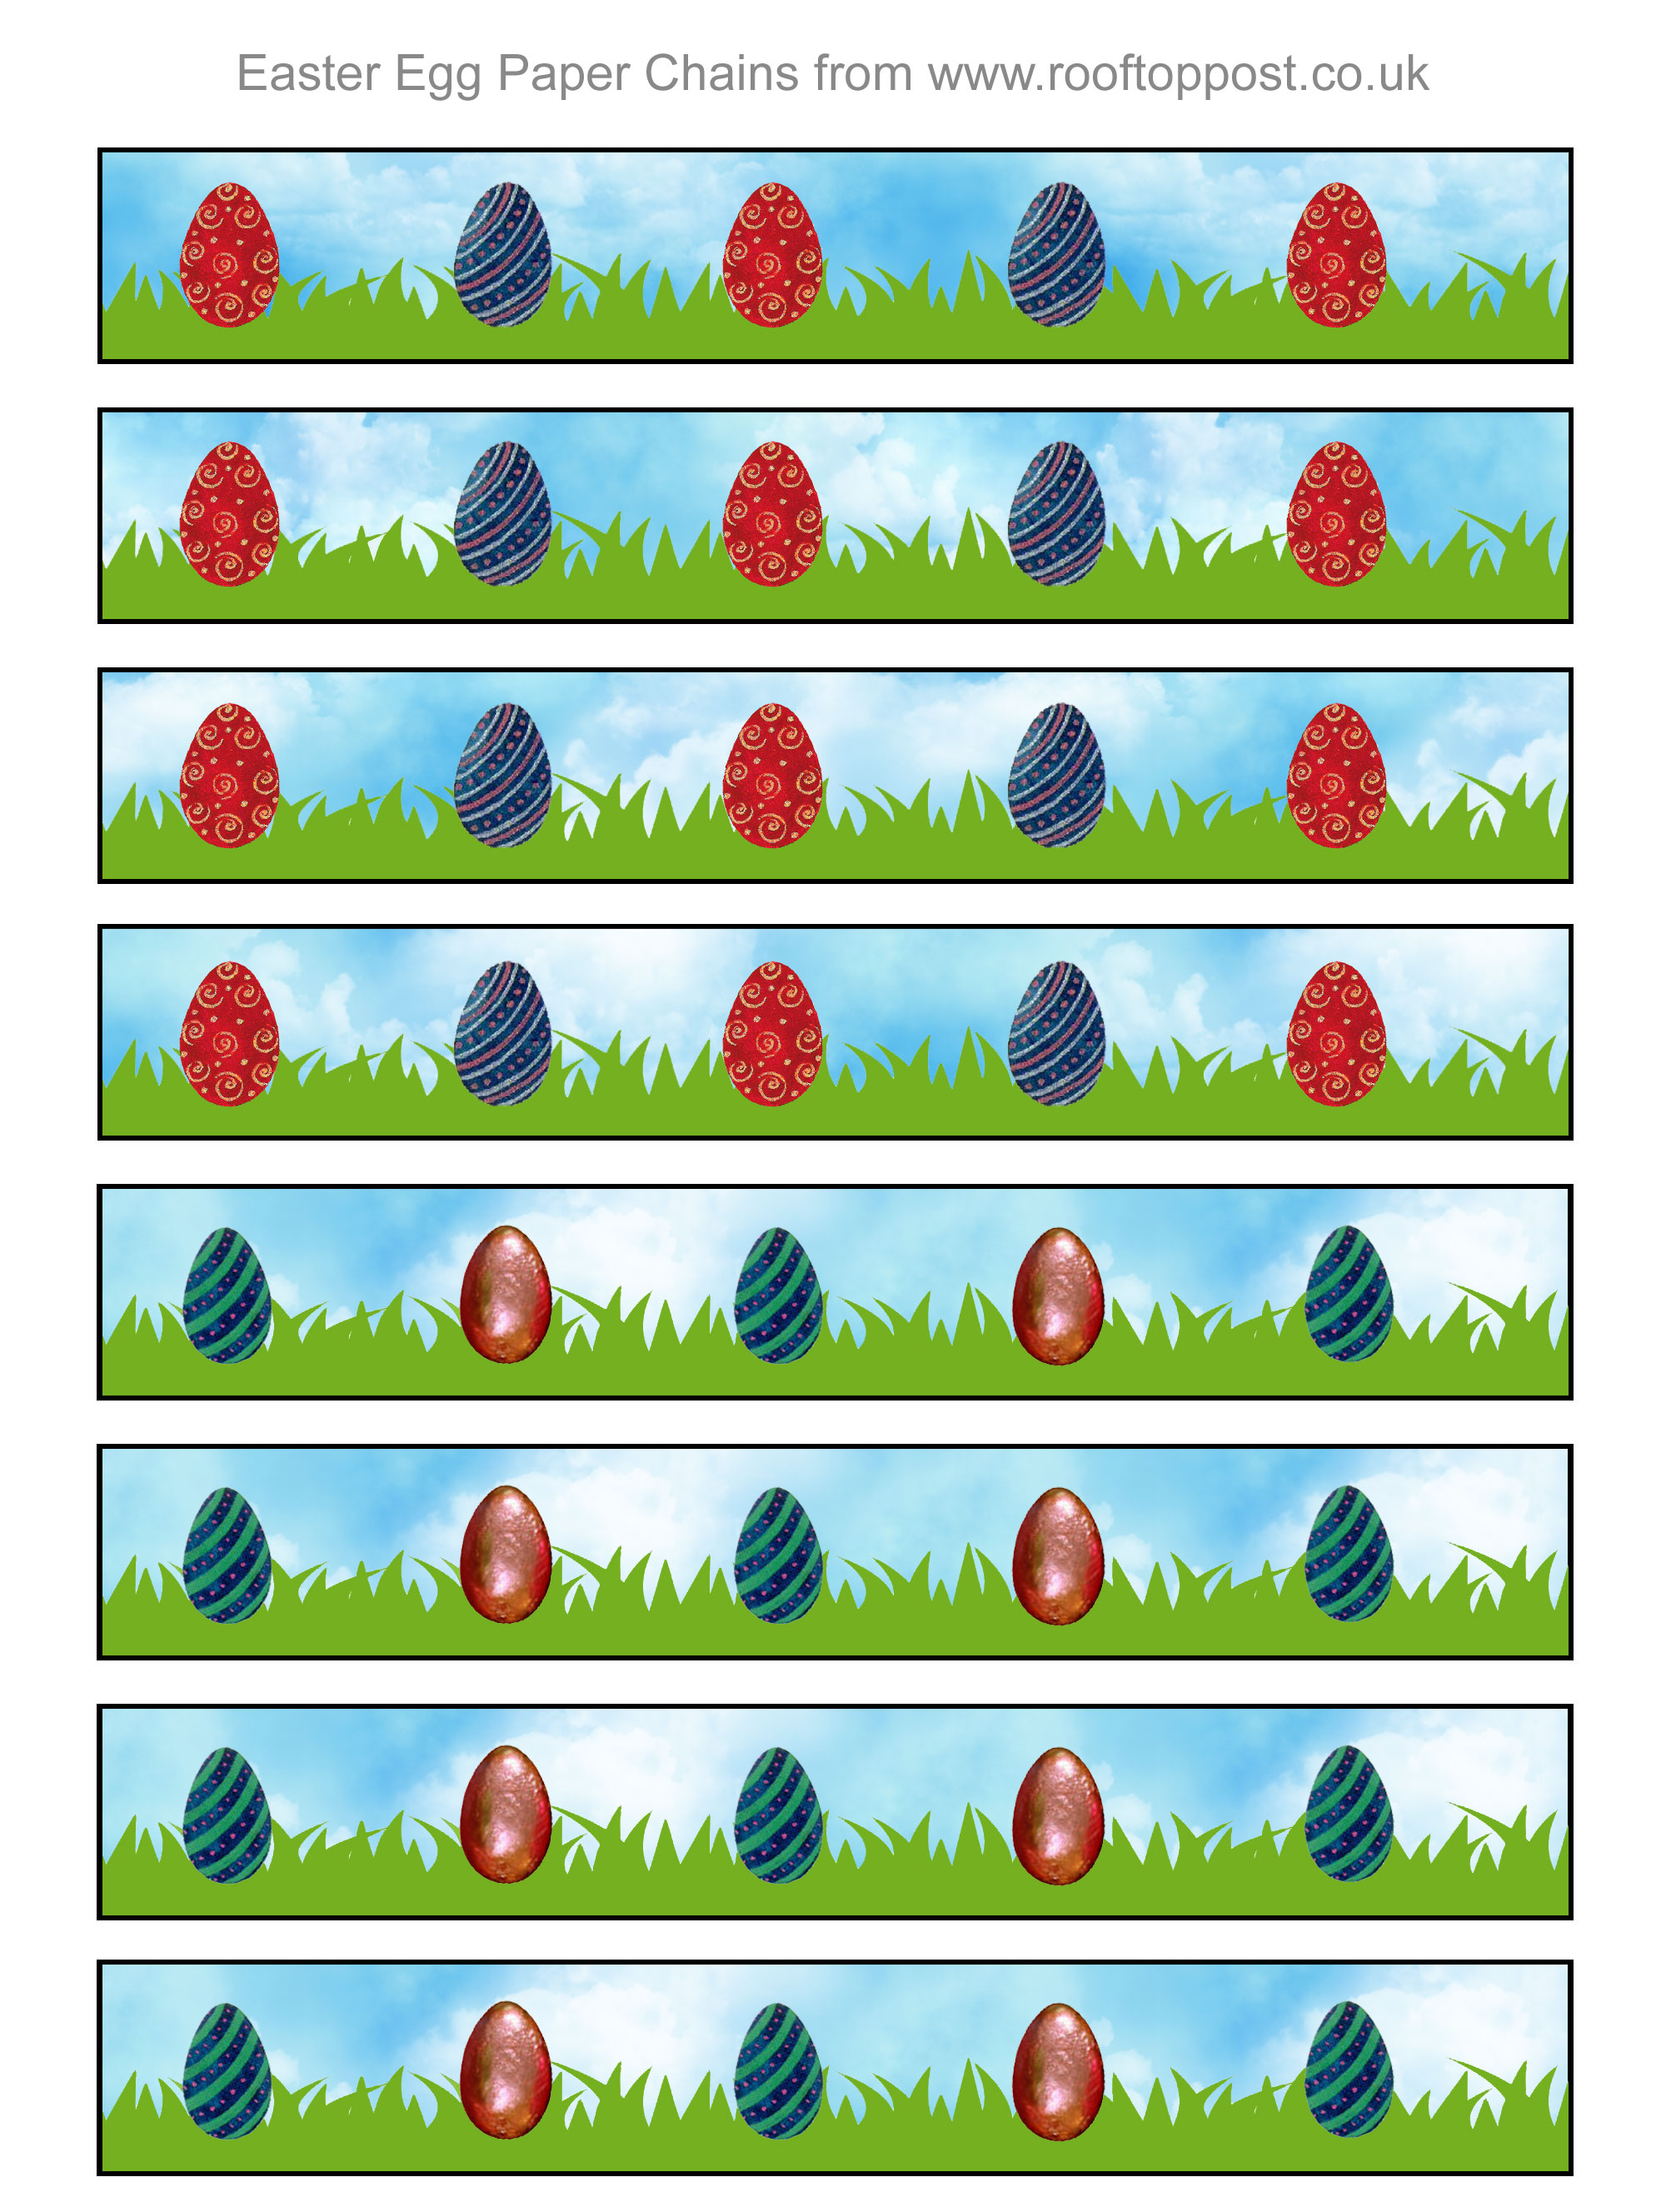 Printable paper chains with an Easter egg design